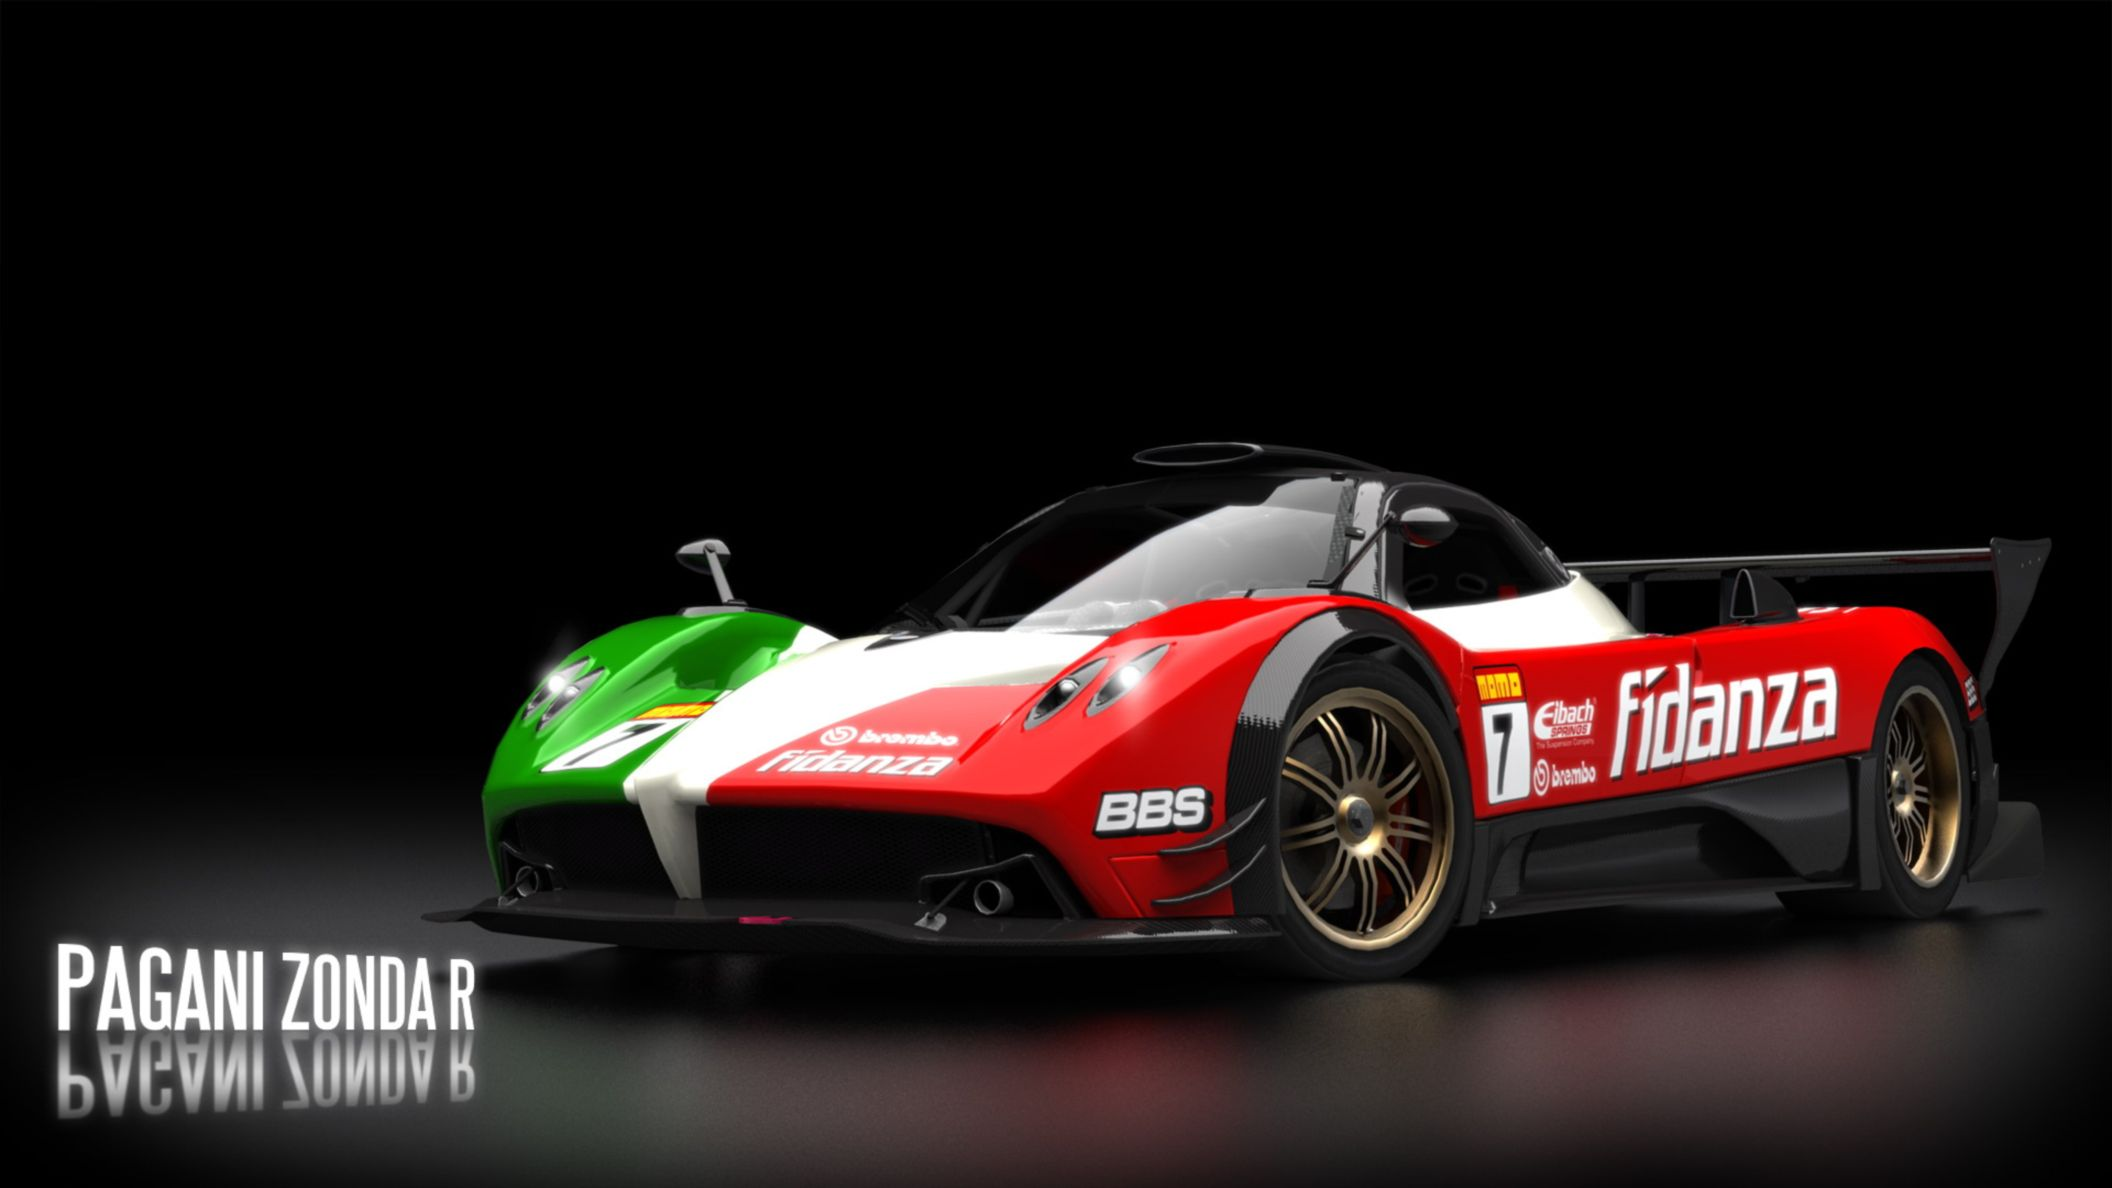 Download free HD Nfs Pagani Honda R HD Wallpaper, image